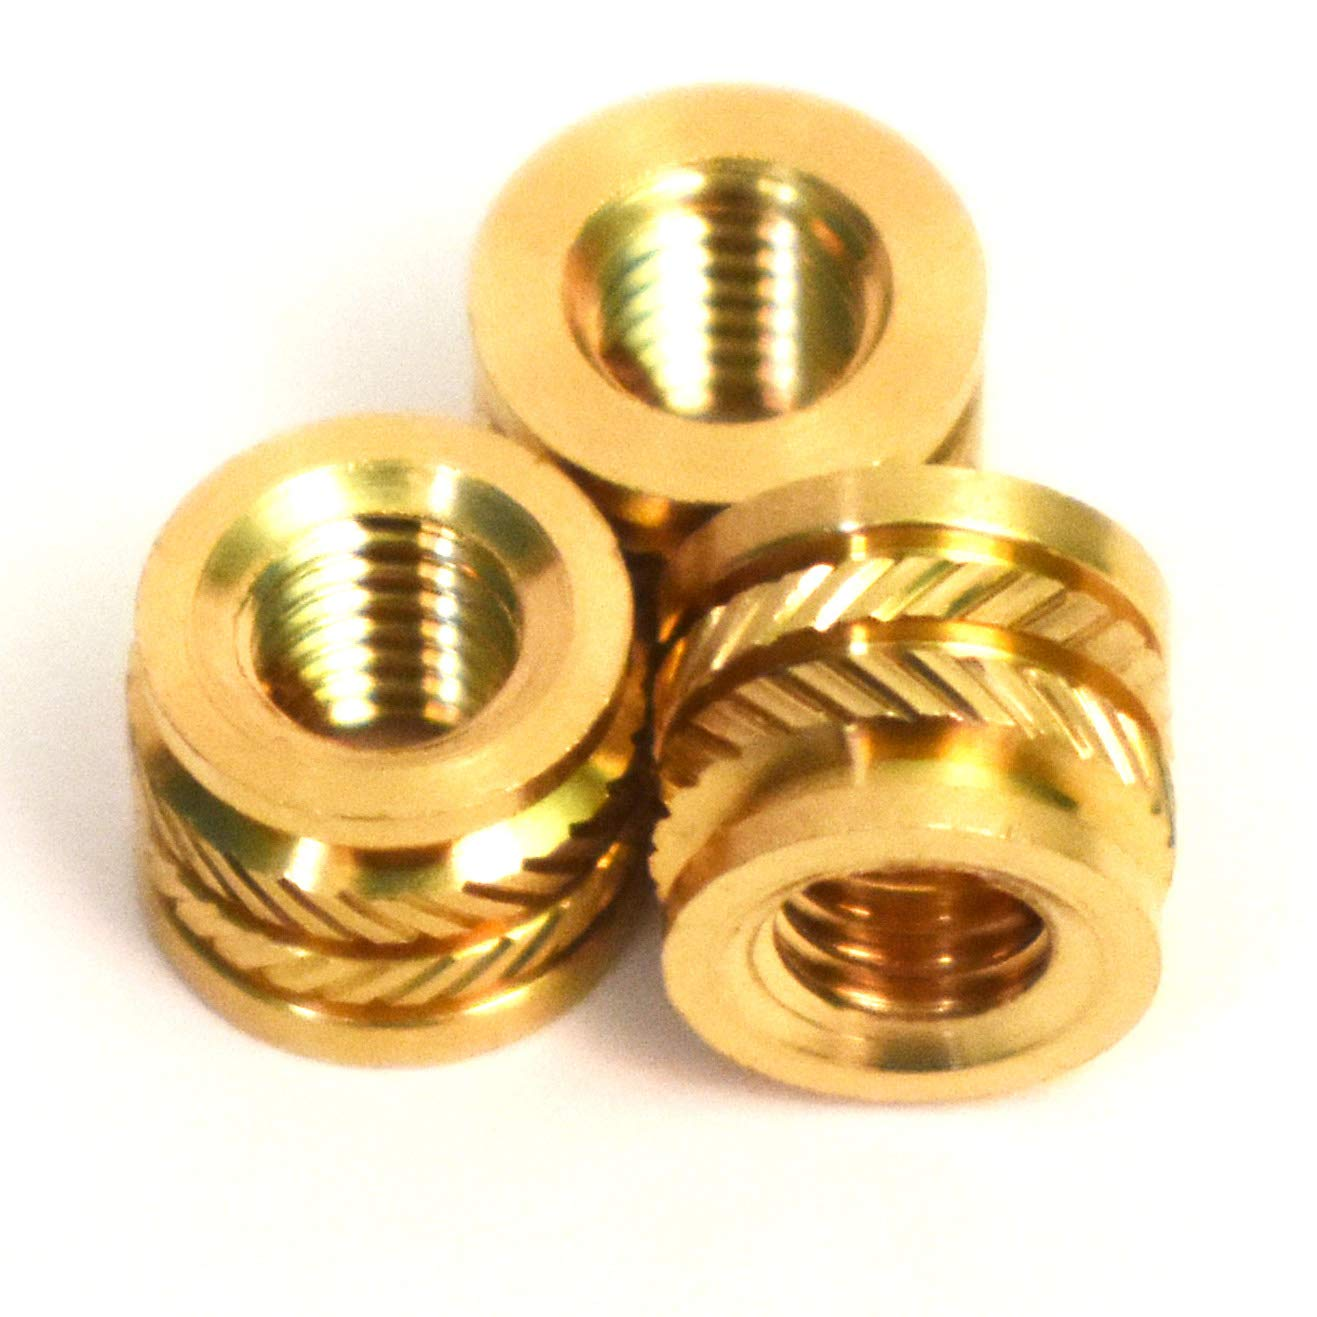 4.7 mm Length 50 pcs Press Fitting or Heat Sink or Injection Molding Type Female M4 Thread M4 Brass Insert 50pcs,6.5mm OD J/&J Products